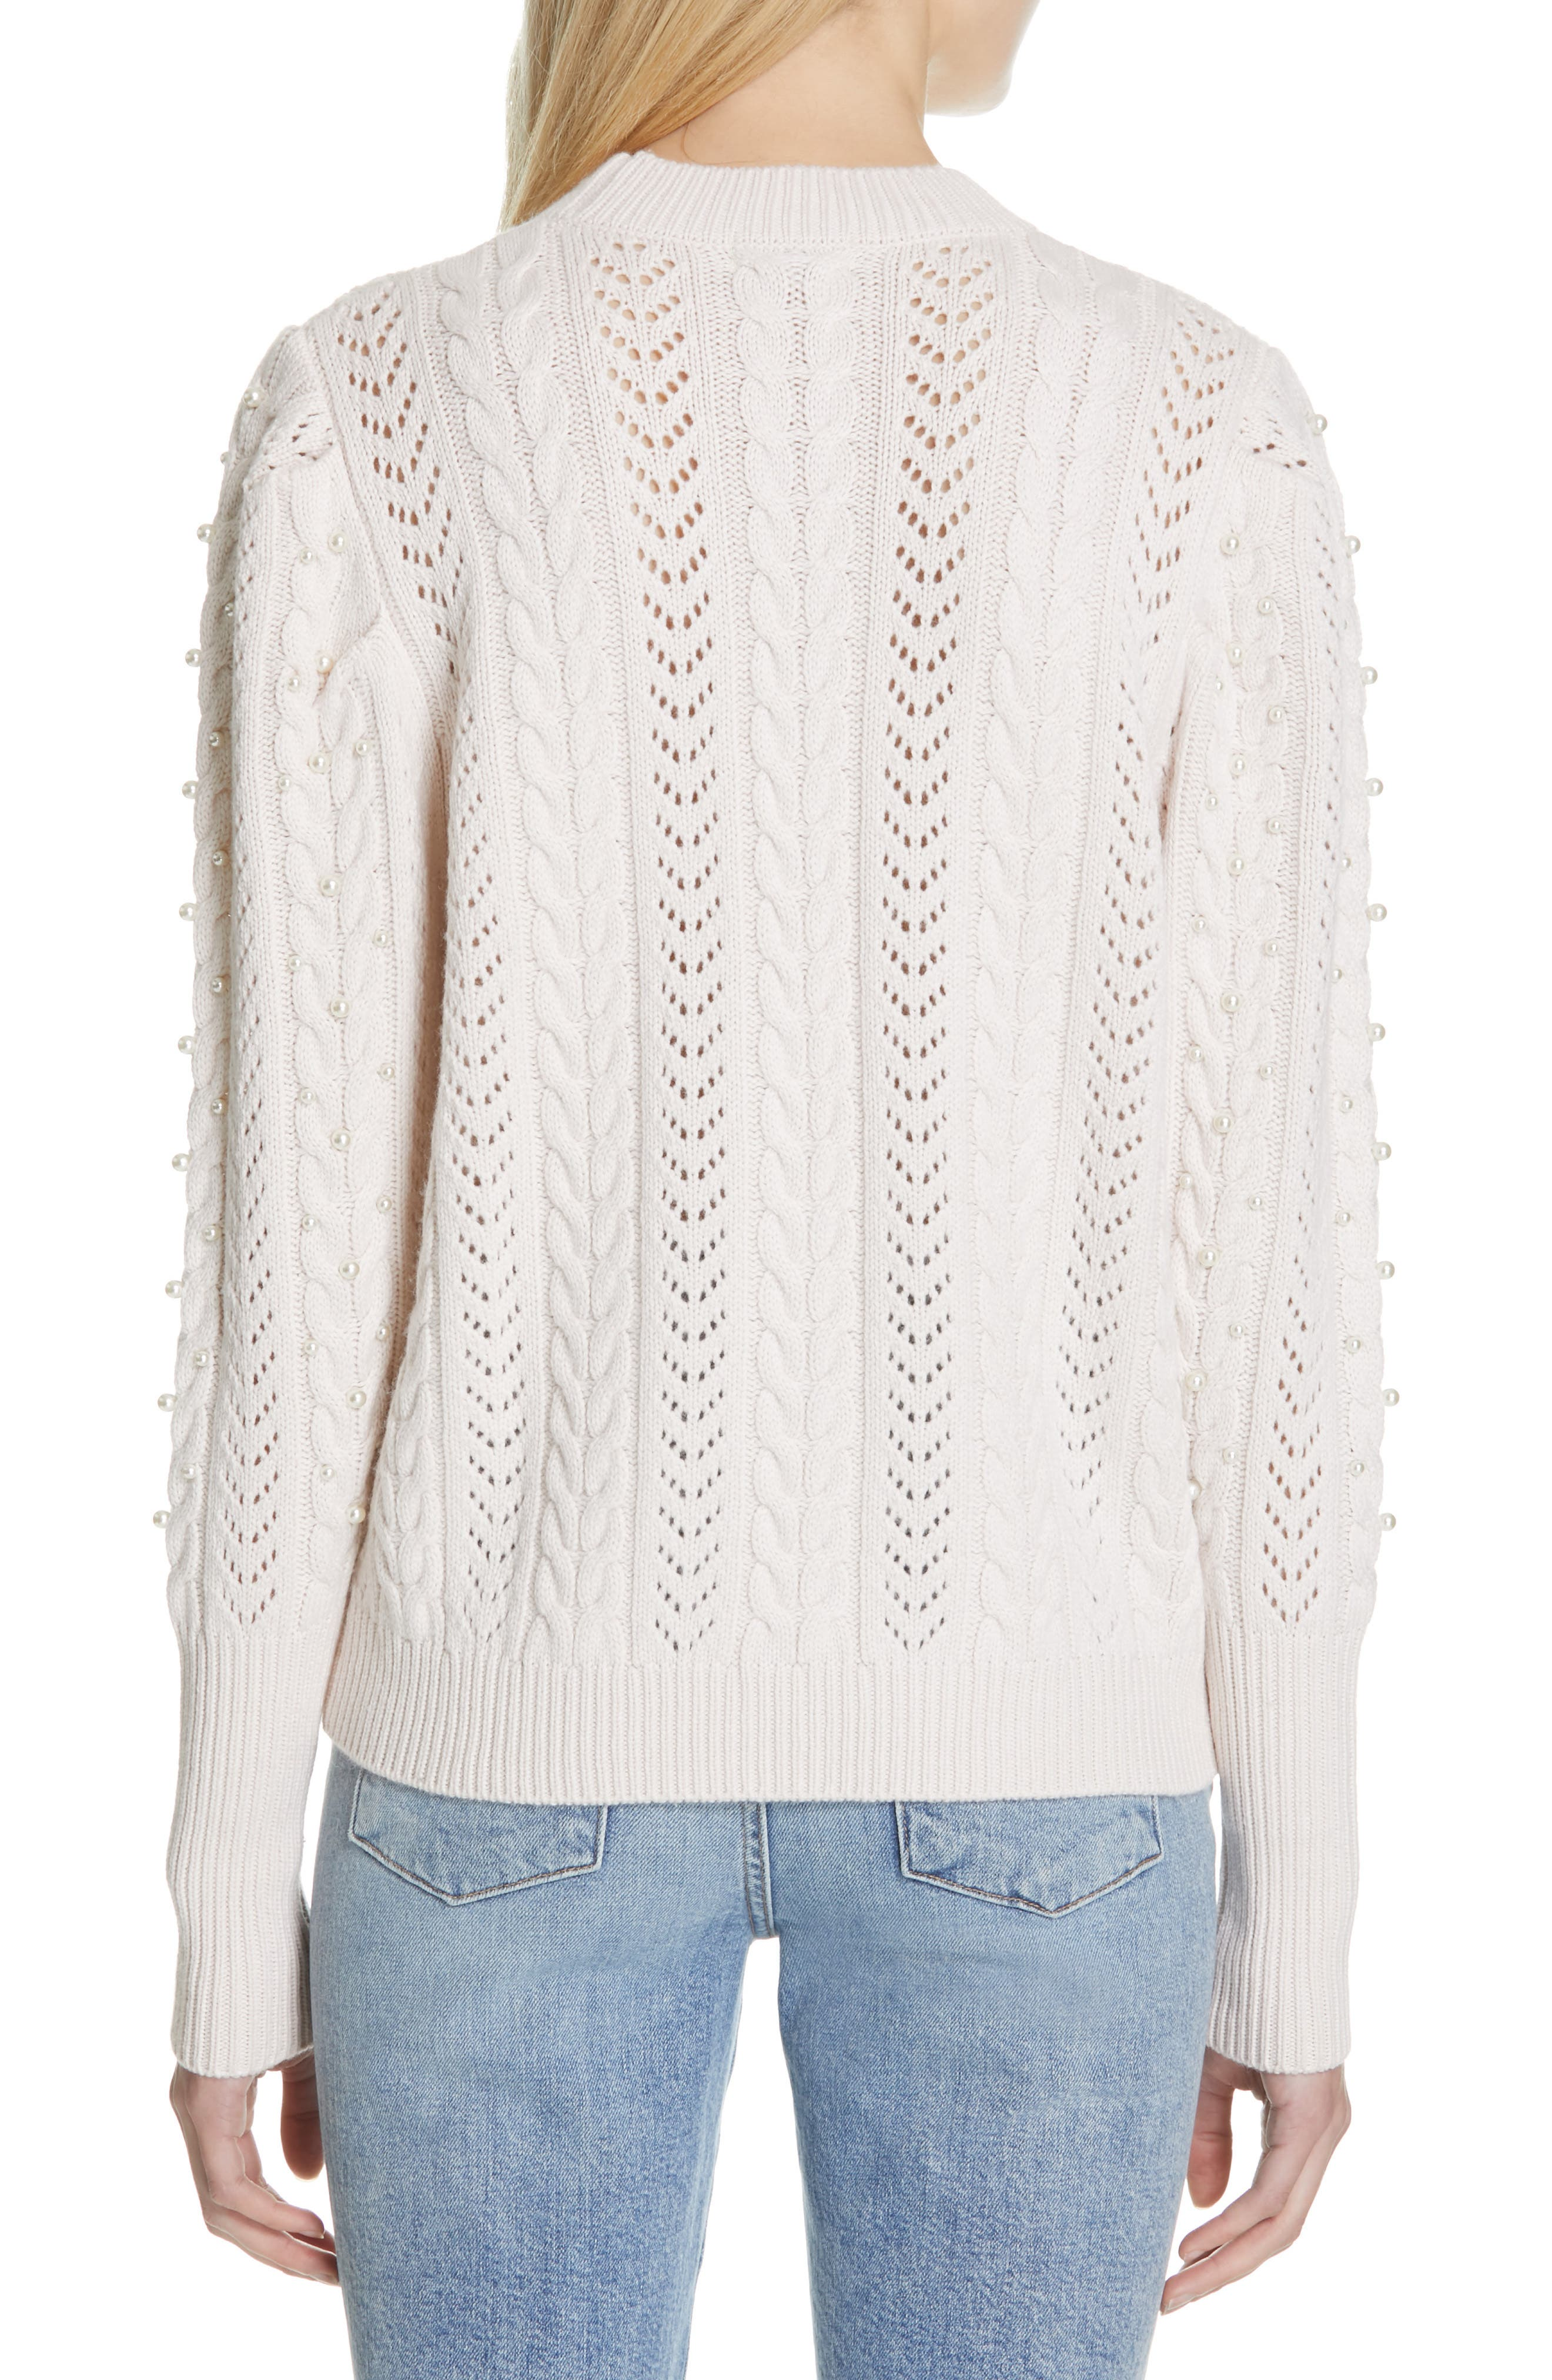 Tinala Faux Pearl Detail Cable Sweater,                             Alternate thumbnail 2, color,                             ANTIQUE WHITE